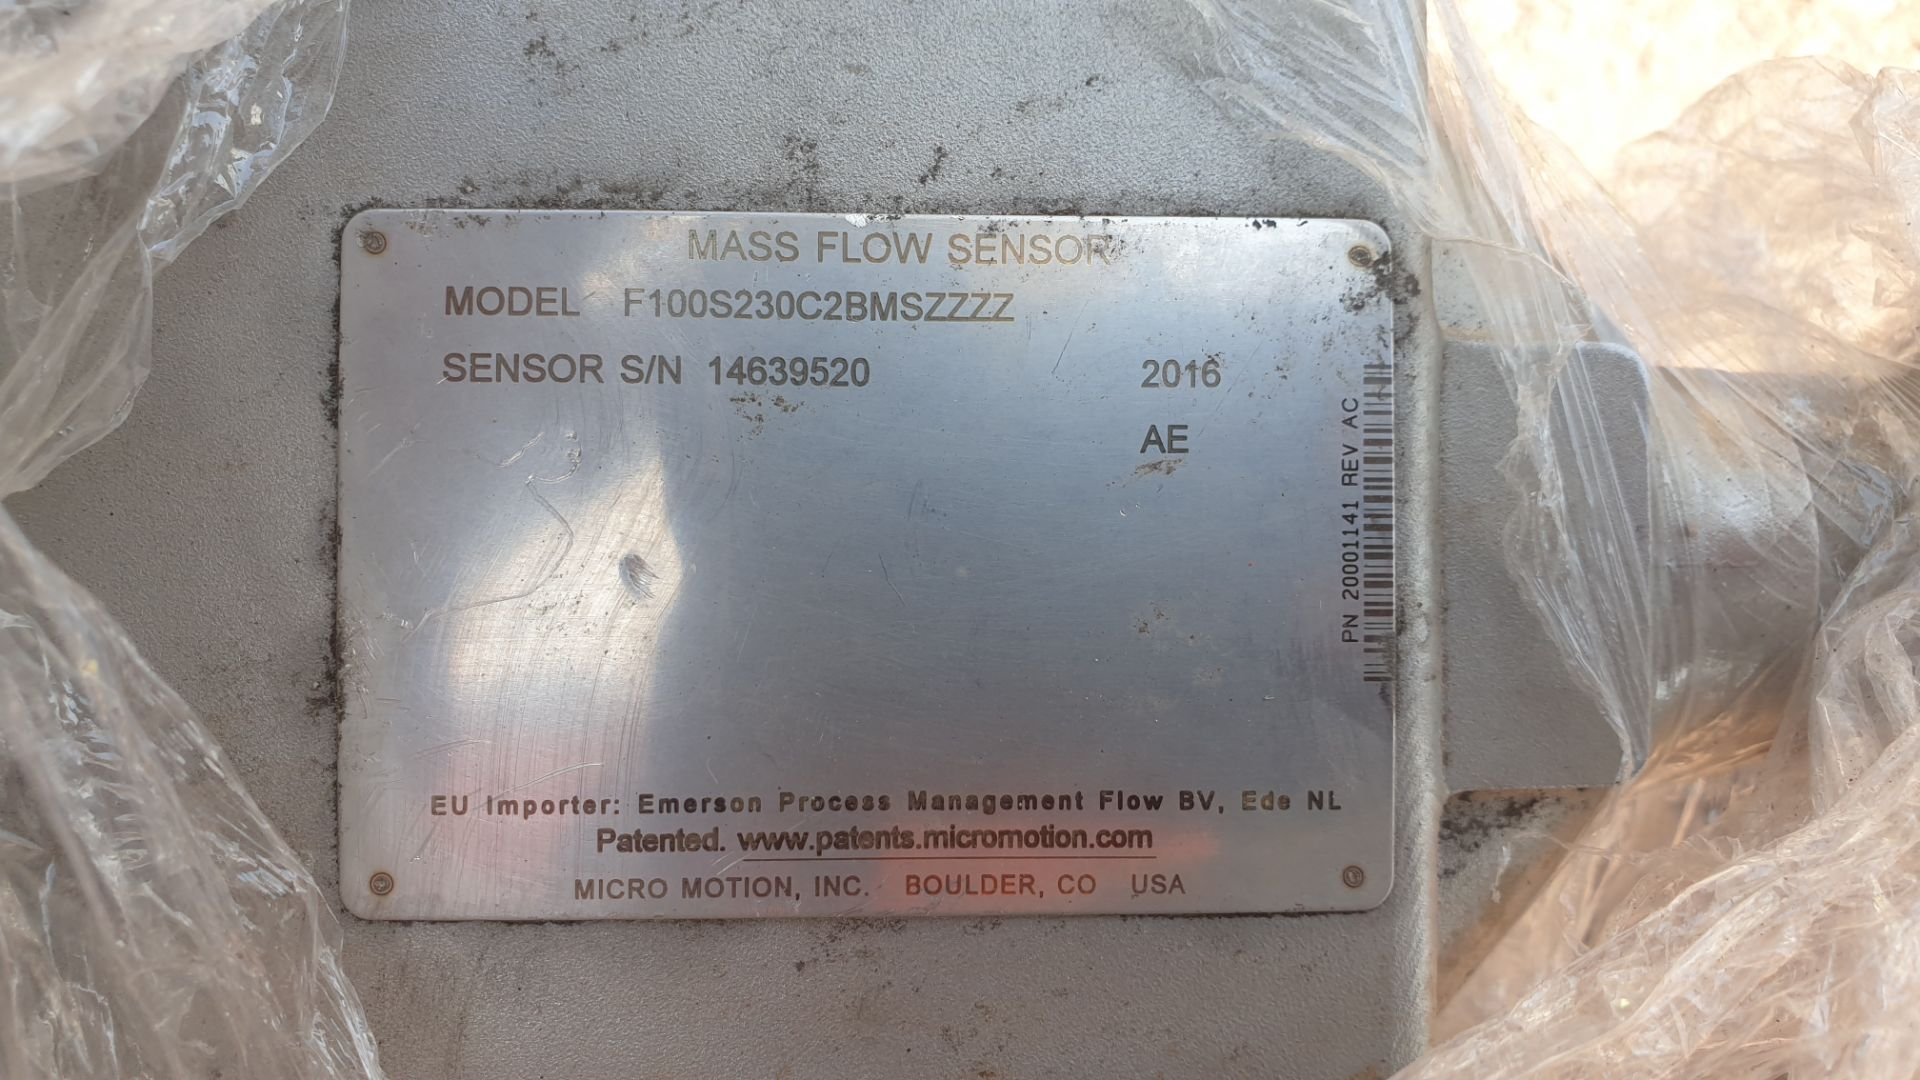 Micromotion Flow meter, model F100S230C2BMSZZZZ NS 14639520 2016 - Image 5 of 10